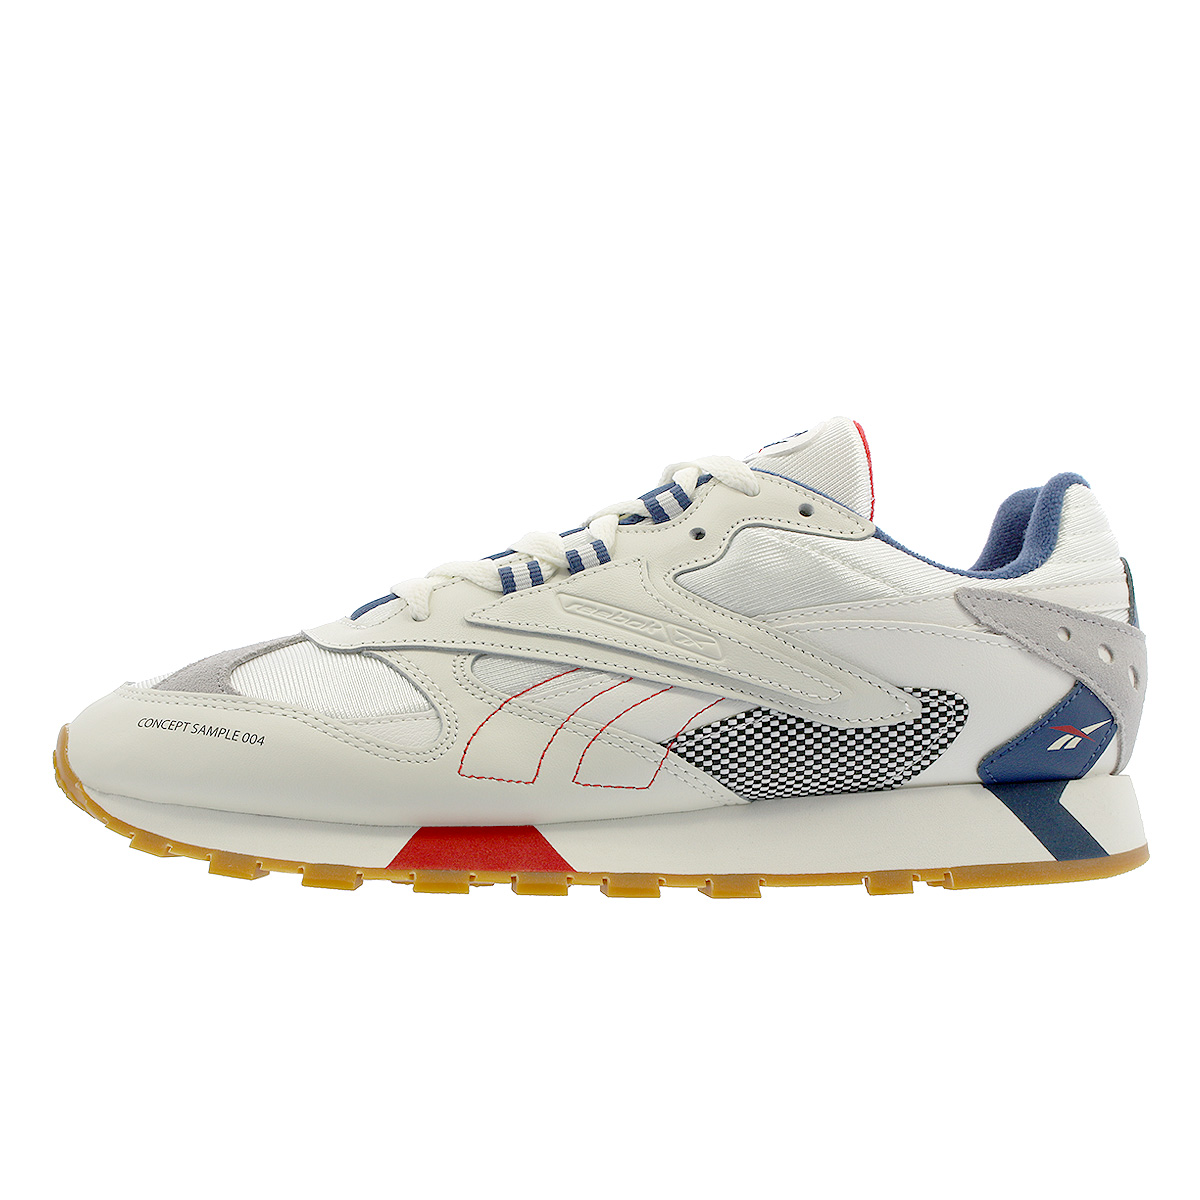 LOWTEX PLUS  Reebok CL LTHR ATI 90 S Reebok classical music leather Orr  terthe icon CHALK SKULL GREY WASHED BLUE PRIMAL RED dv5372  d0c7b7f3f